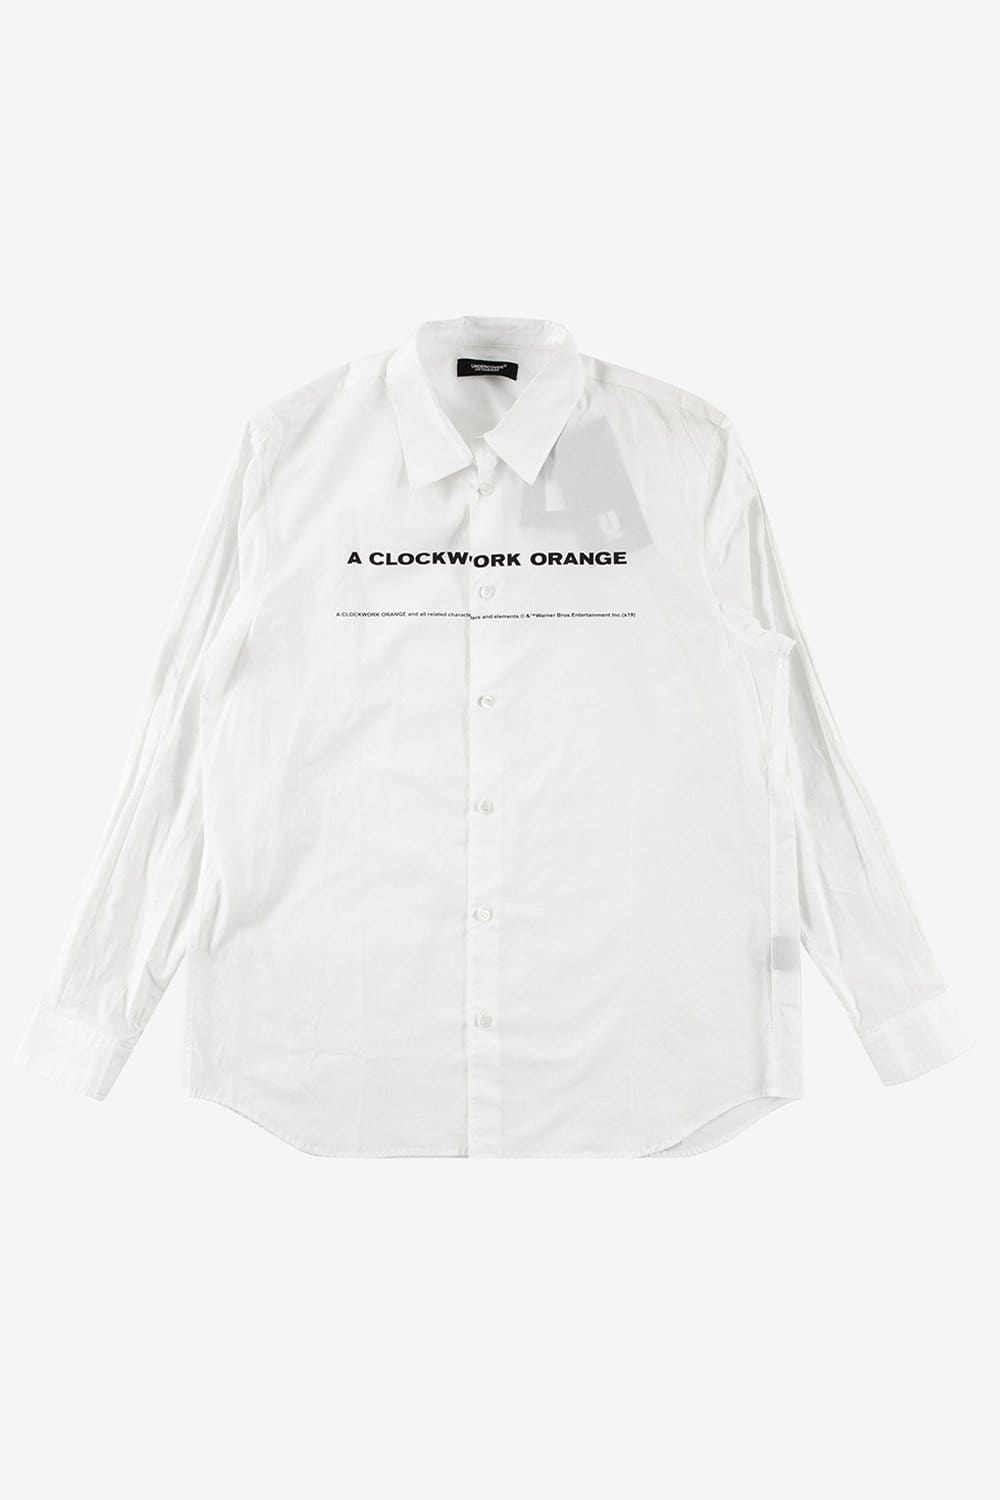 Undercover Apparel A Clockwork Orange Shirt